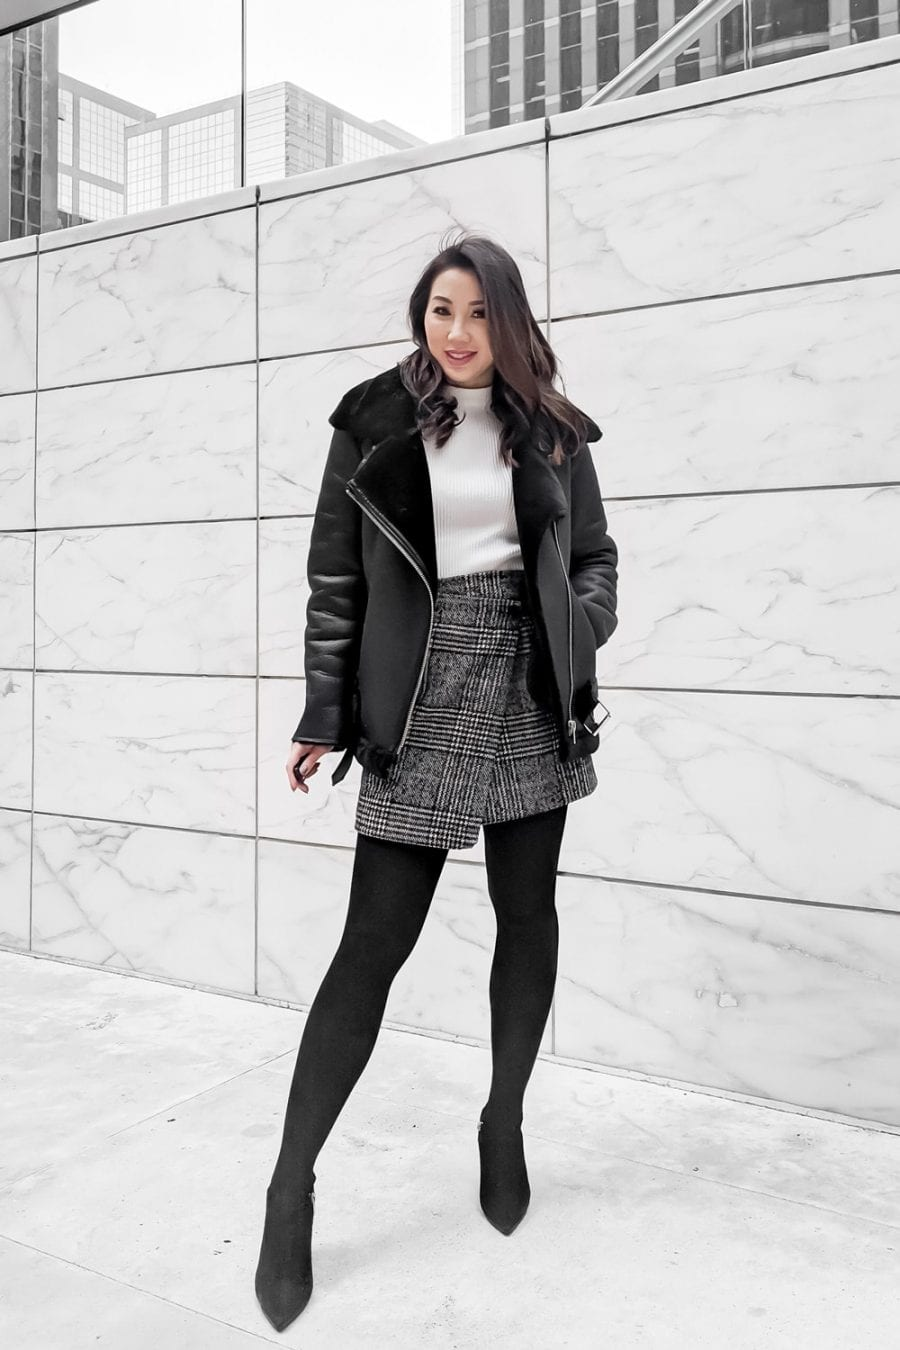 Winter Coat Roundup - Black Shearling Moto Coat with Plaid Skirt - YesMissy